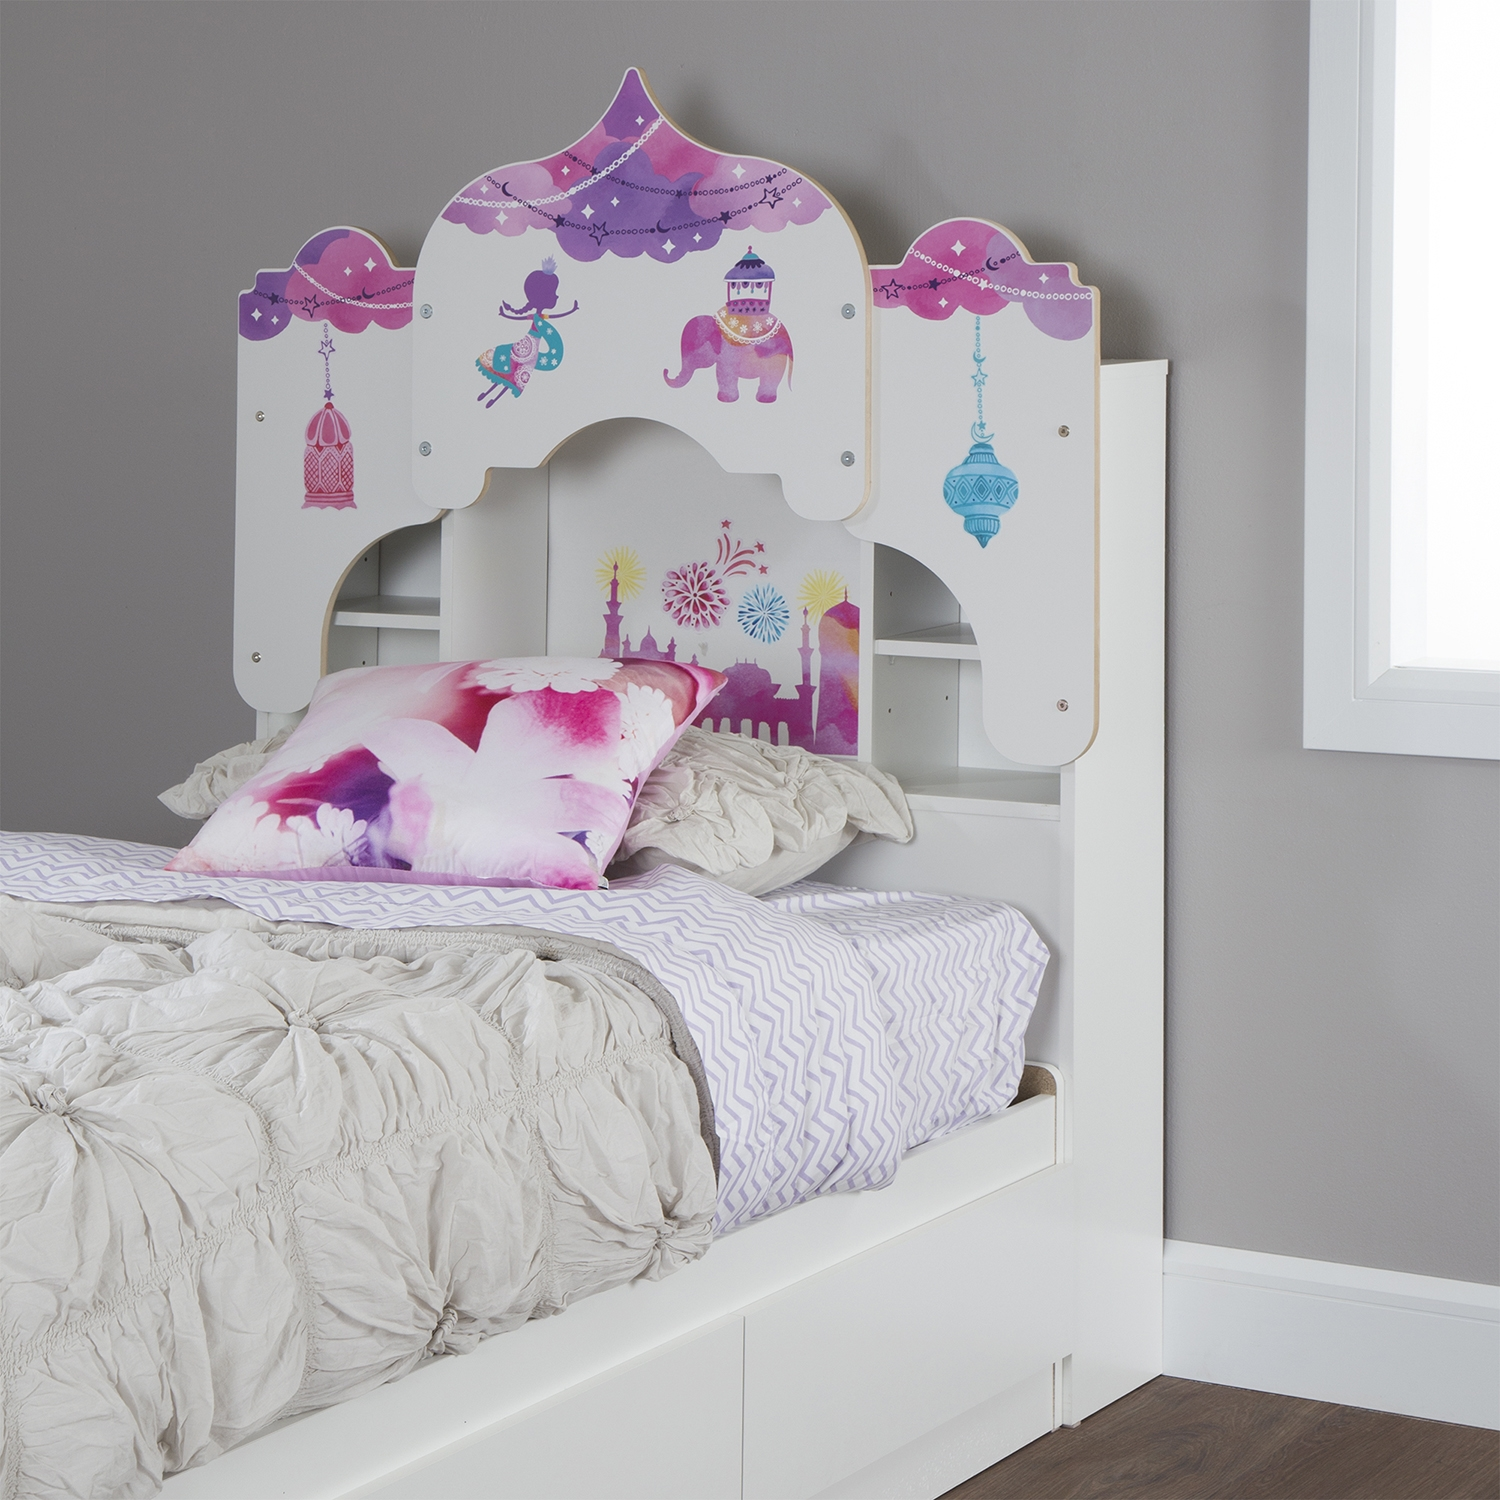 Vito Twin Bookcase Headboard with Decals - Royal Palace Theme, Pure White - SS-10099